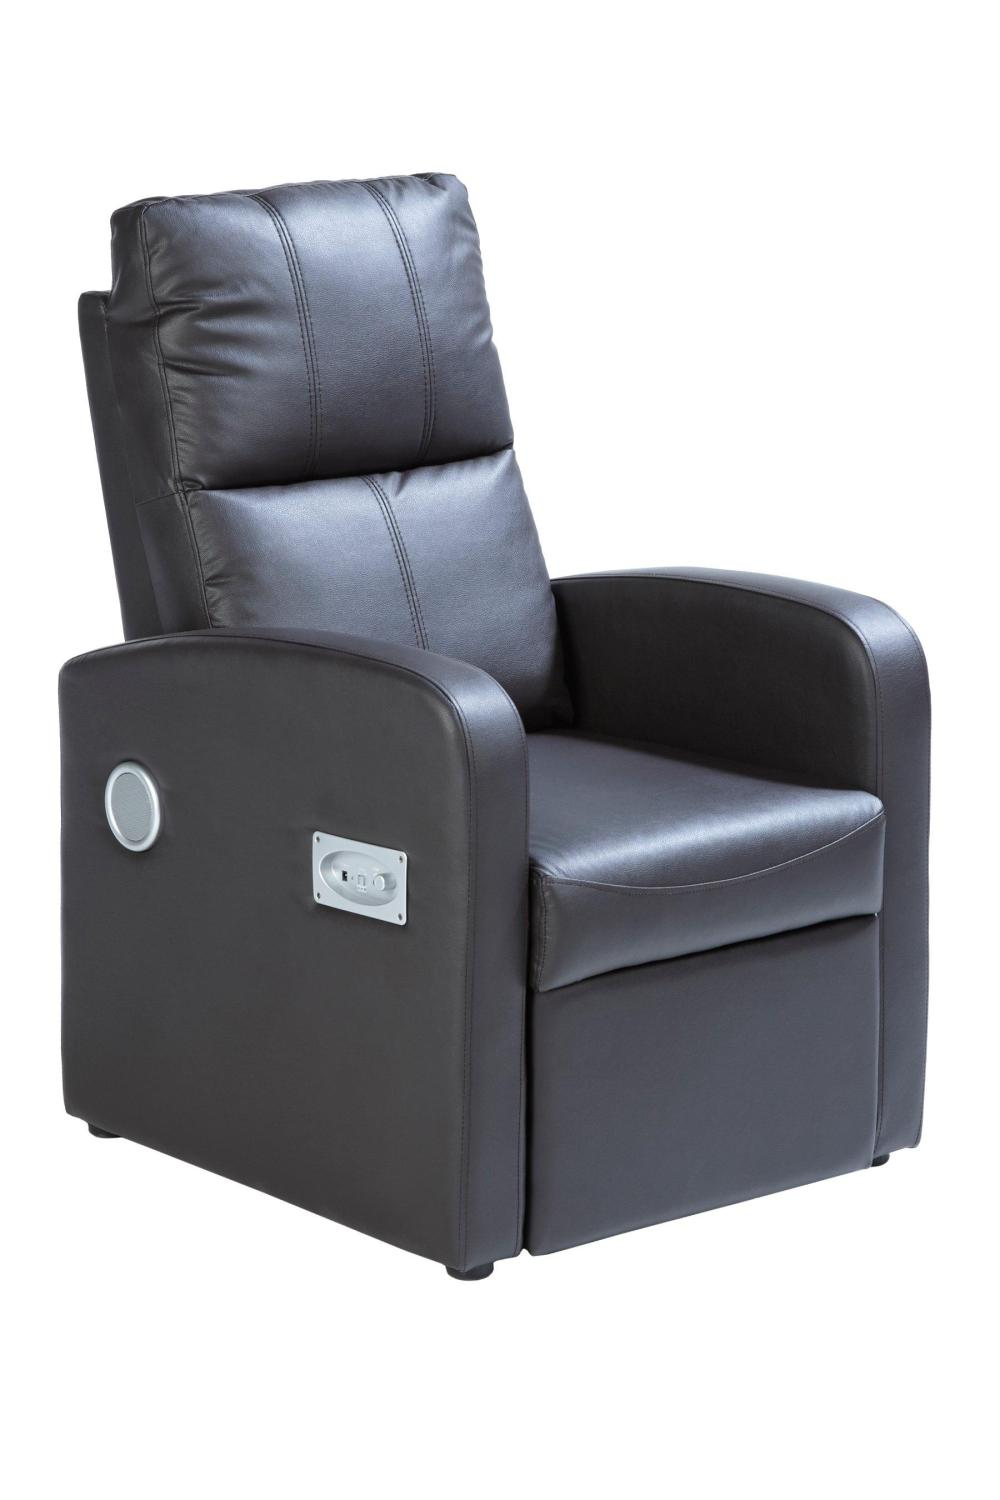 Chair With Speakers Faux Leather Pushback Black Brown Recliner Chair With